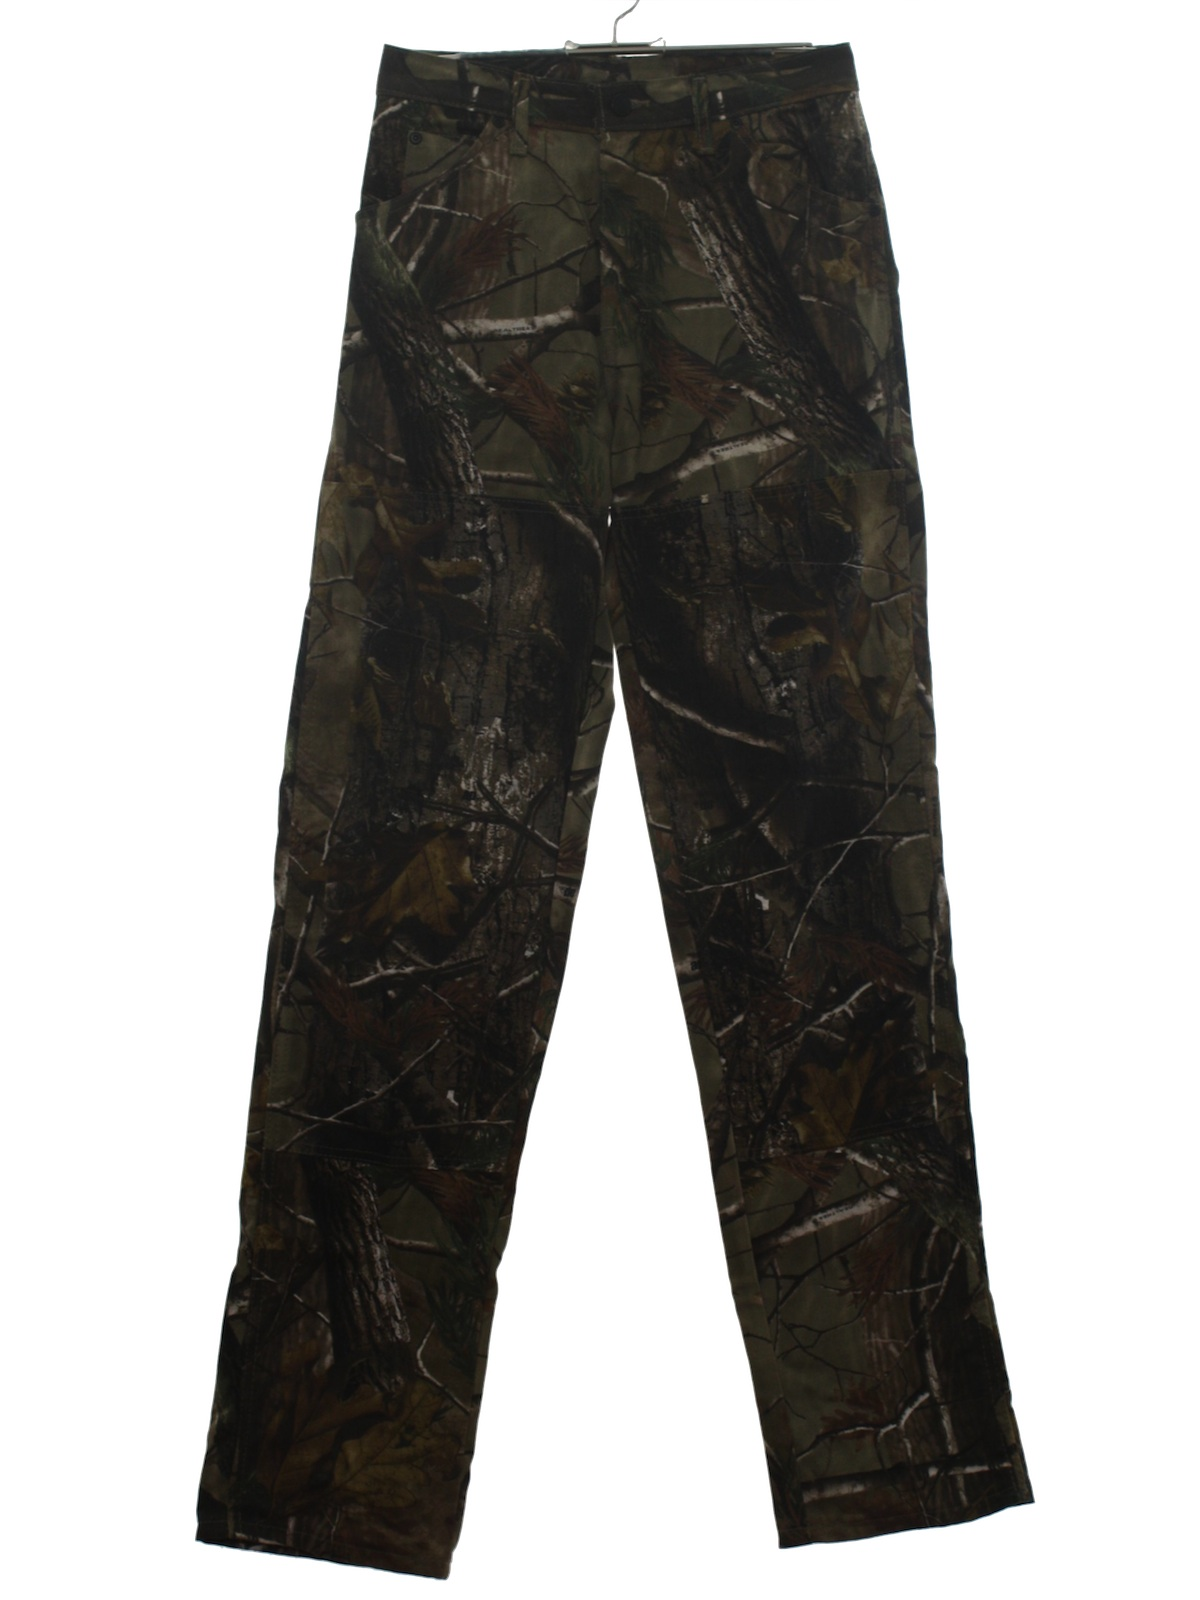 d7a88bc99f06 90s Pants (Dickies)  90s -Dickies- Mens dusty clay green background ...